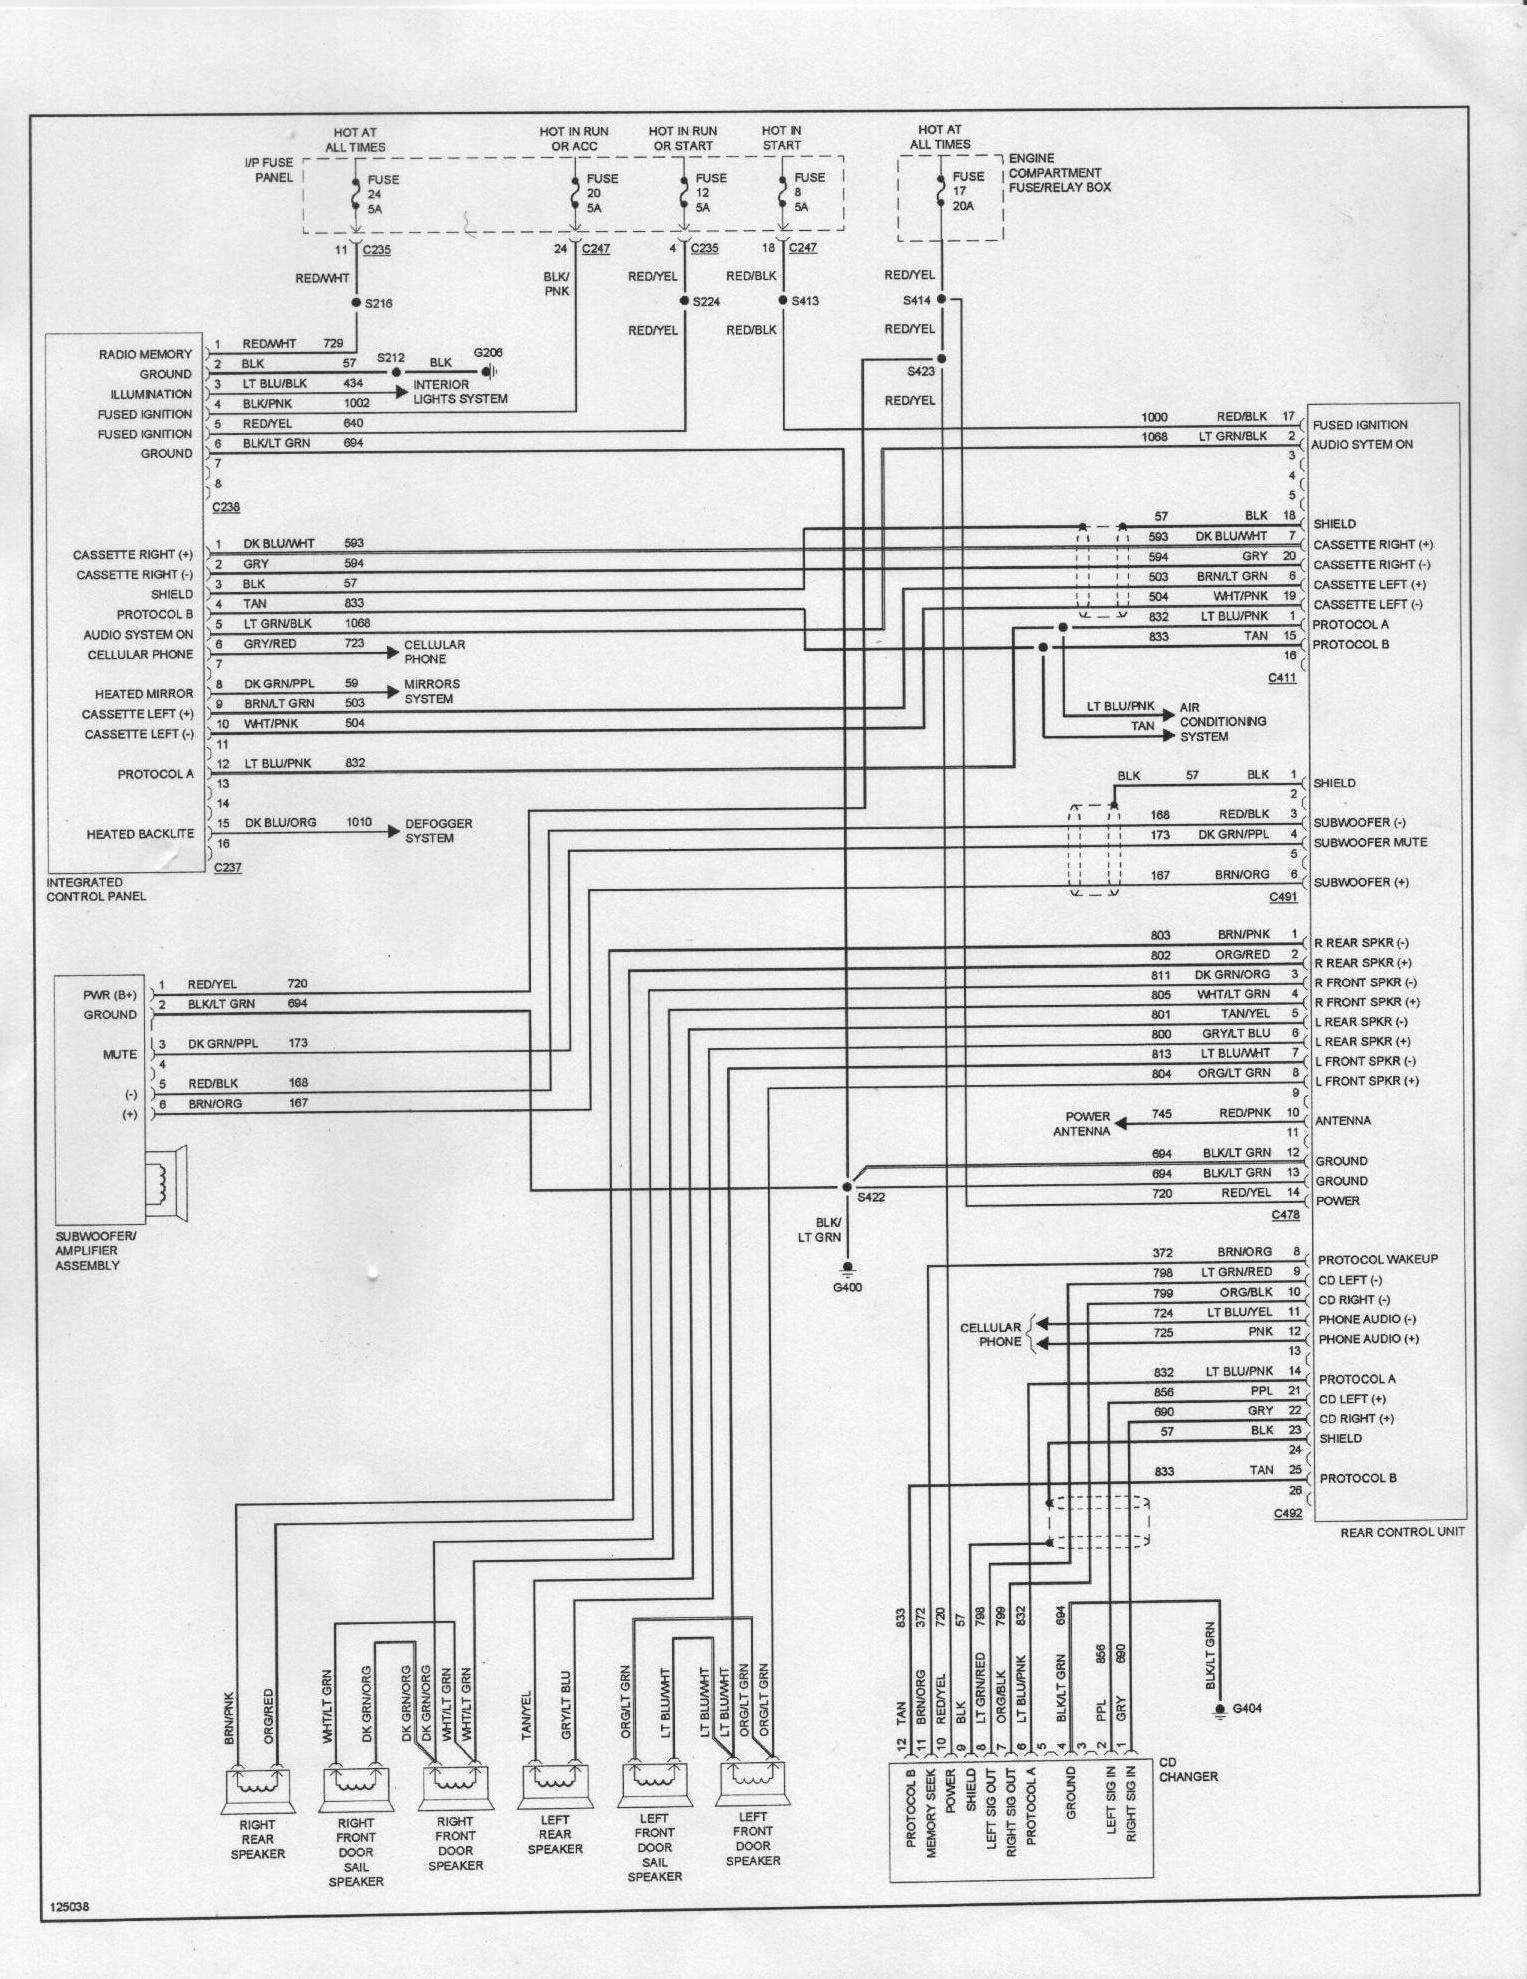 44917d1173064914 wiring diagram ford taurus diagram96 wiring diagram ford taurus taurus car club of america ford 2006 ford taurus wiring diagram at n-0.co